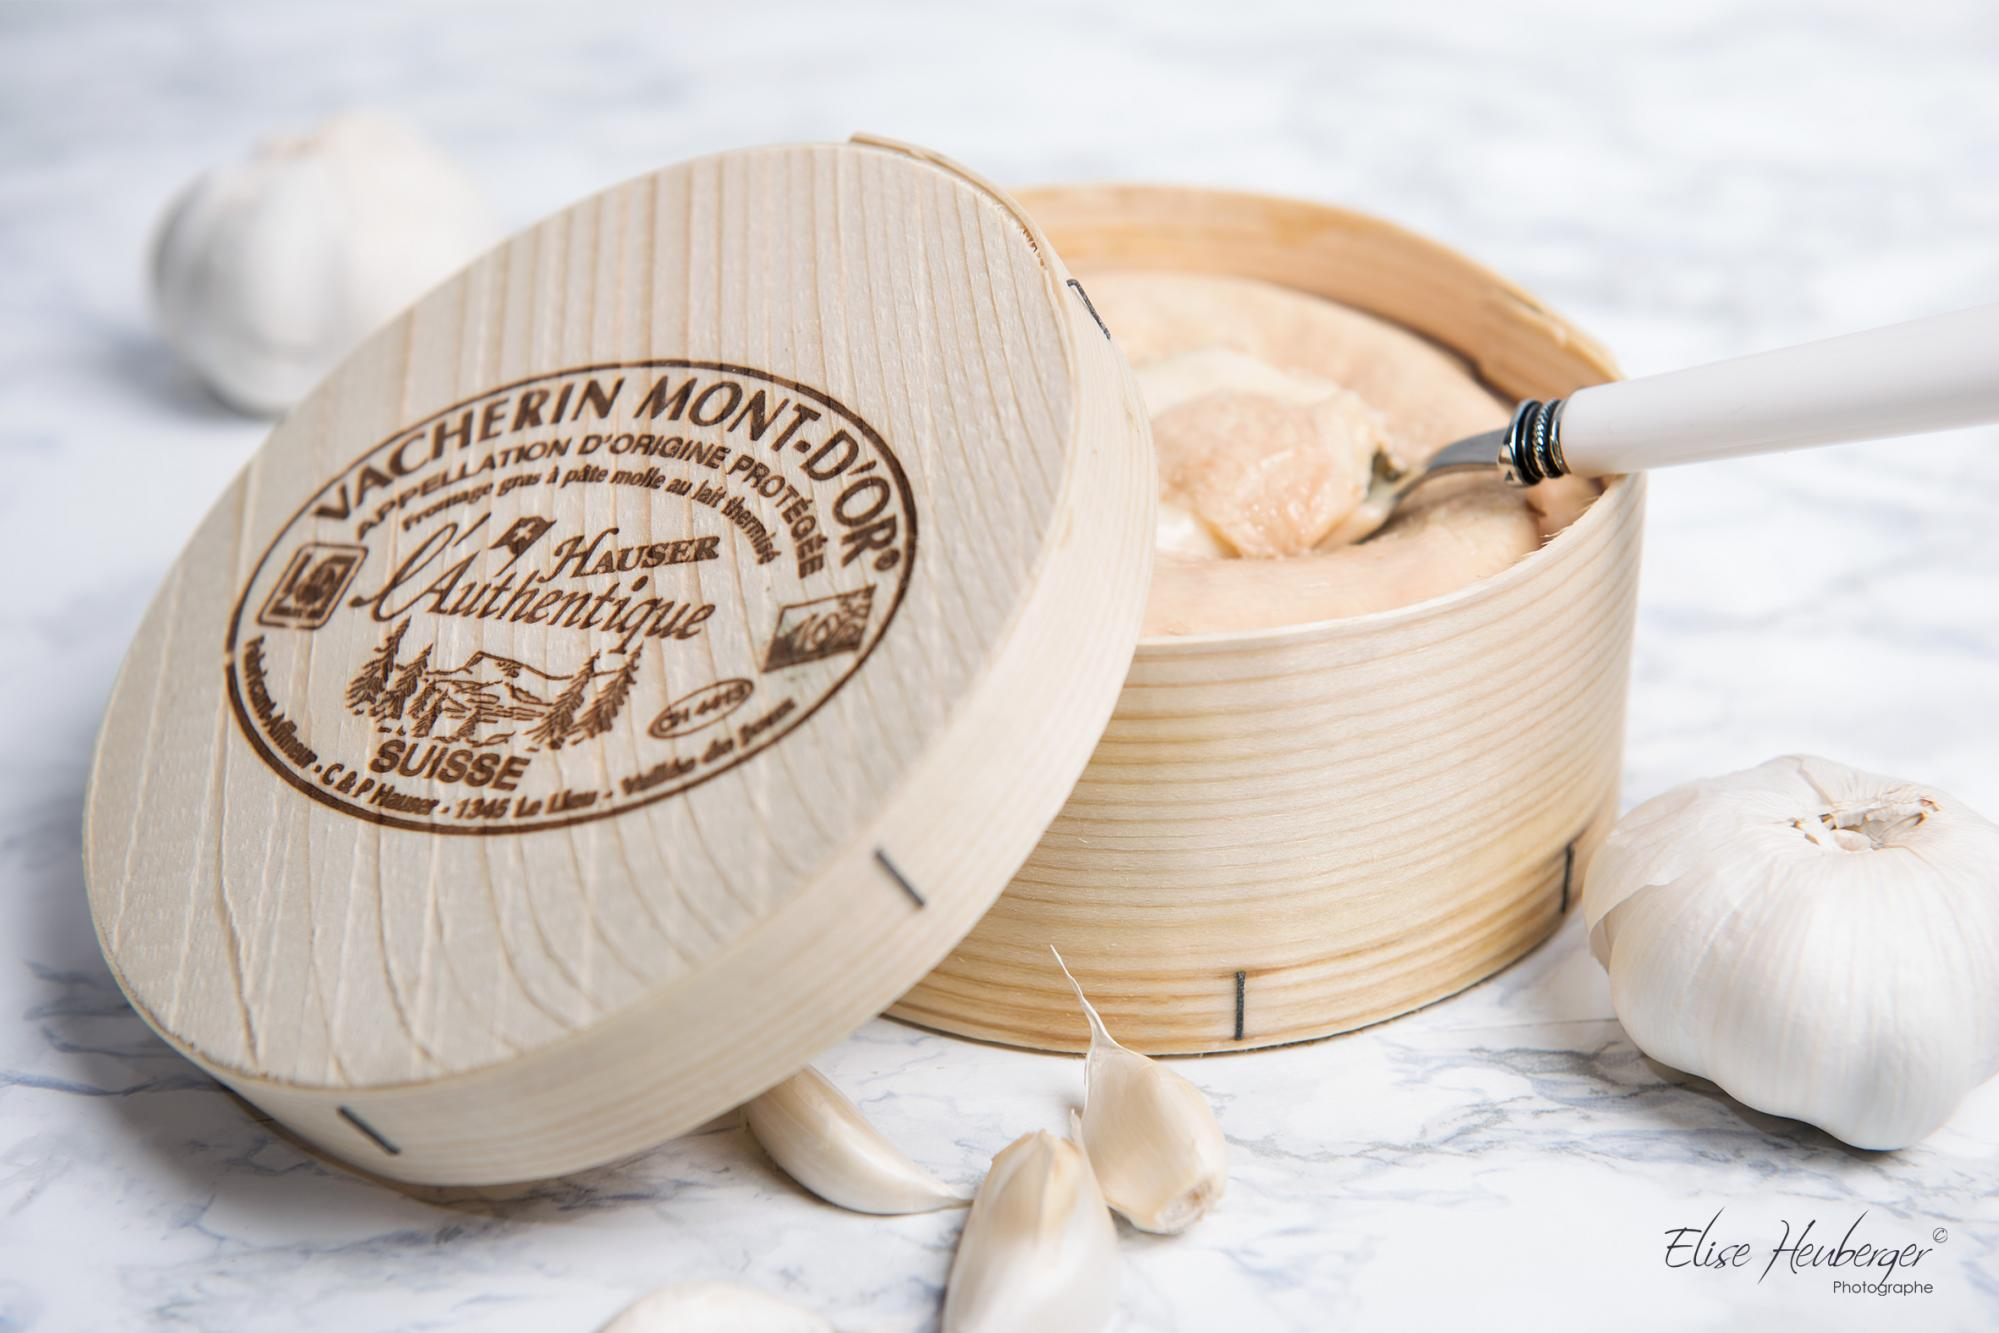 Vacherin Mont-d'Or